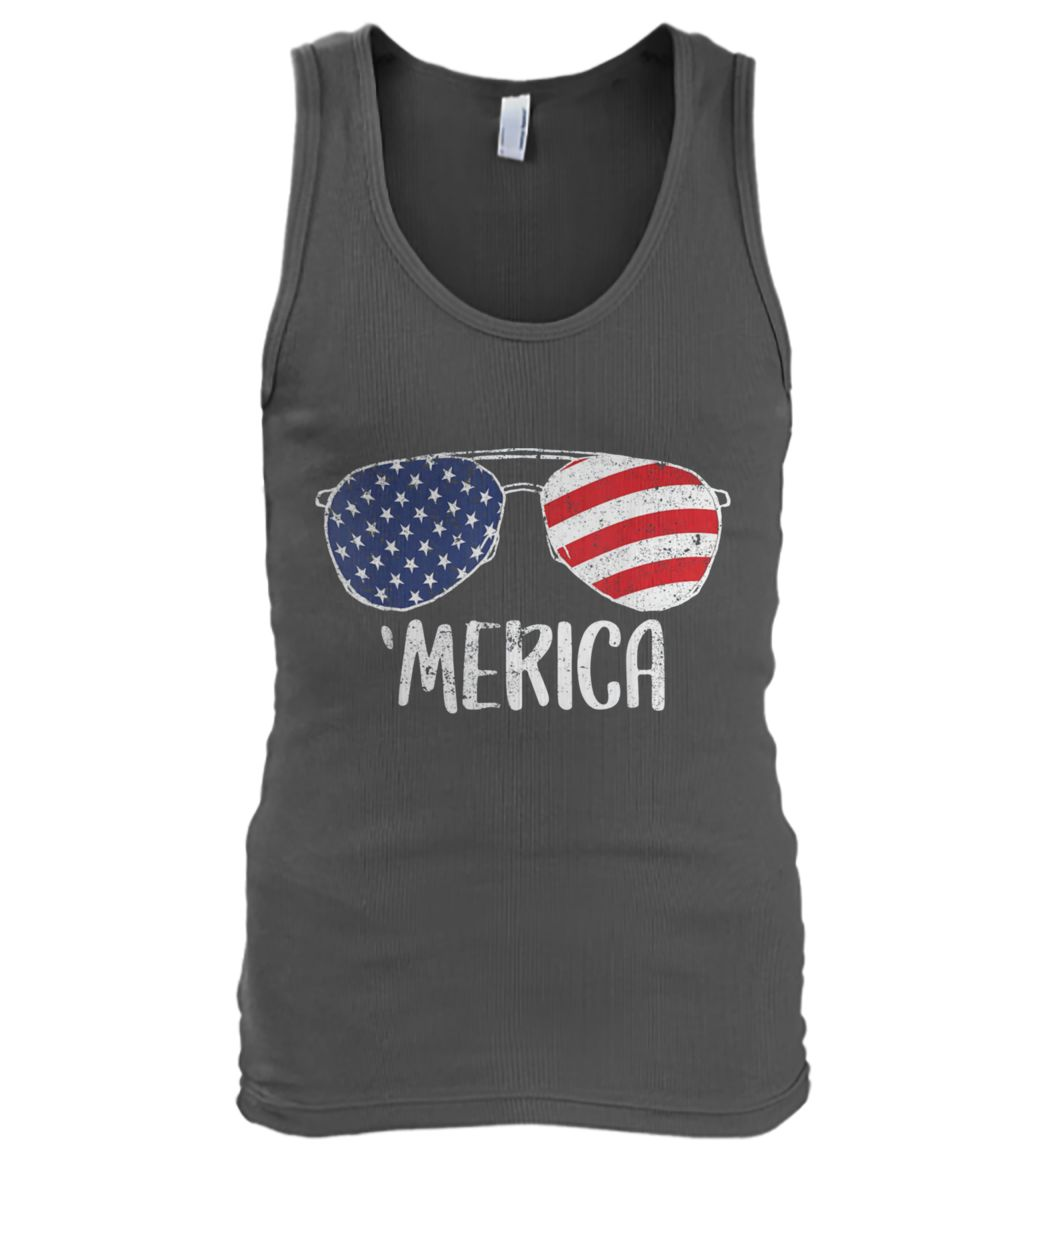 USA flag merica sunglasses 4th of july men's tank top